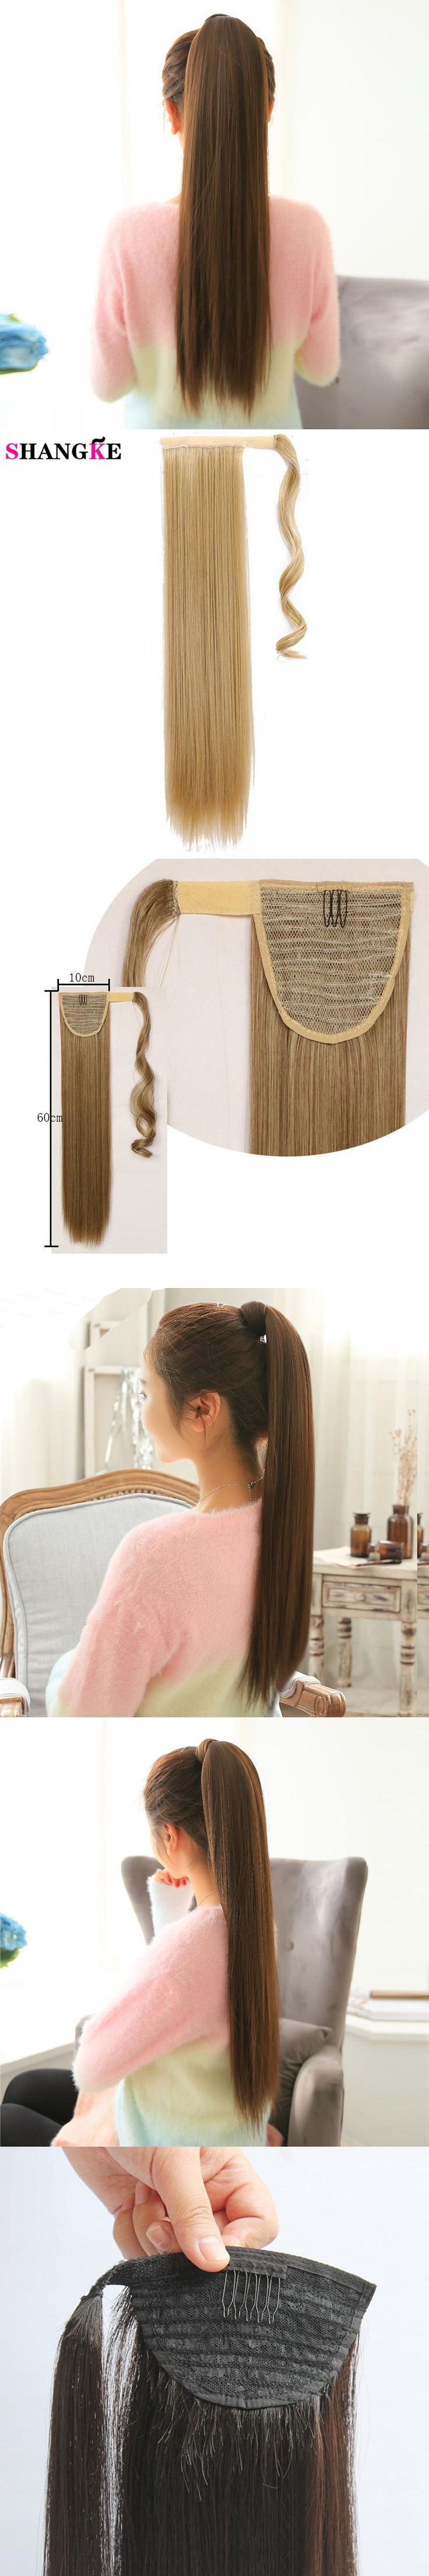 SHANGKE 24''Long Straight Ponytail Clip In Pony Tail Synthetic Hair Extension Extensions Wrap on Hair Pieces Fake Ponytail